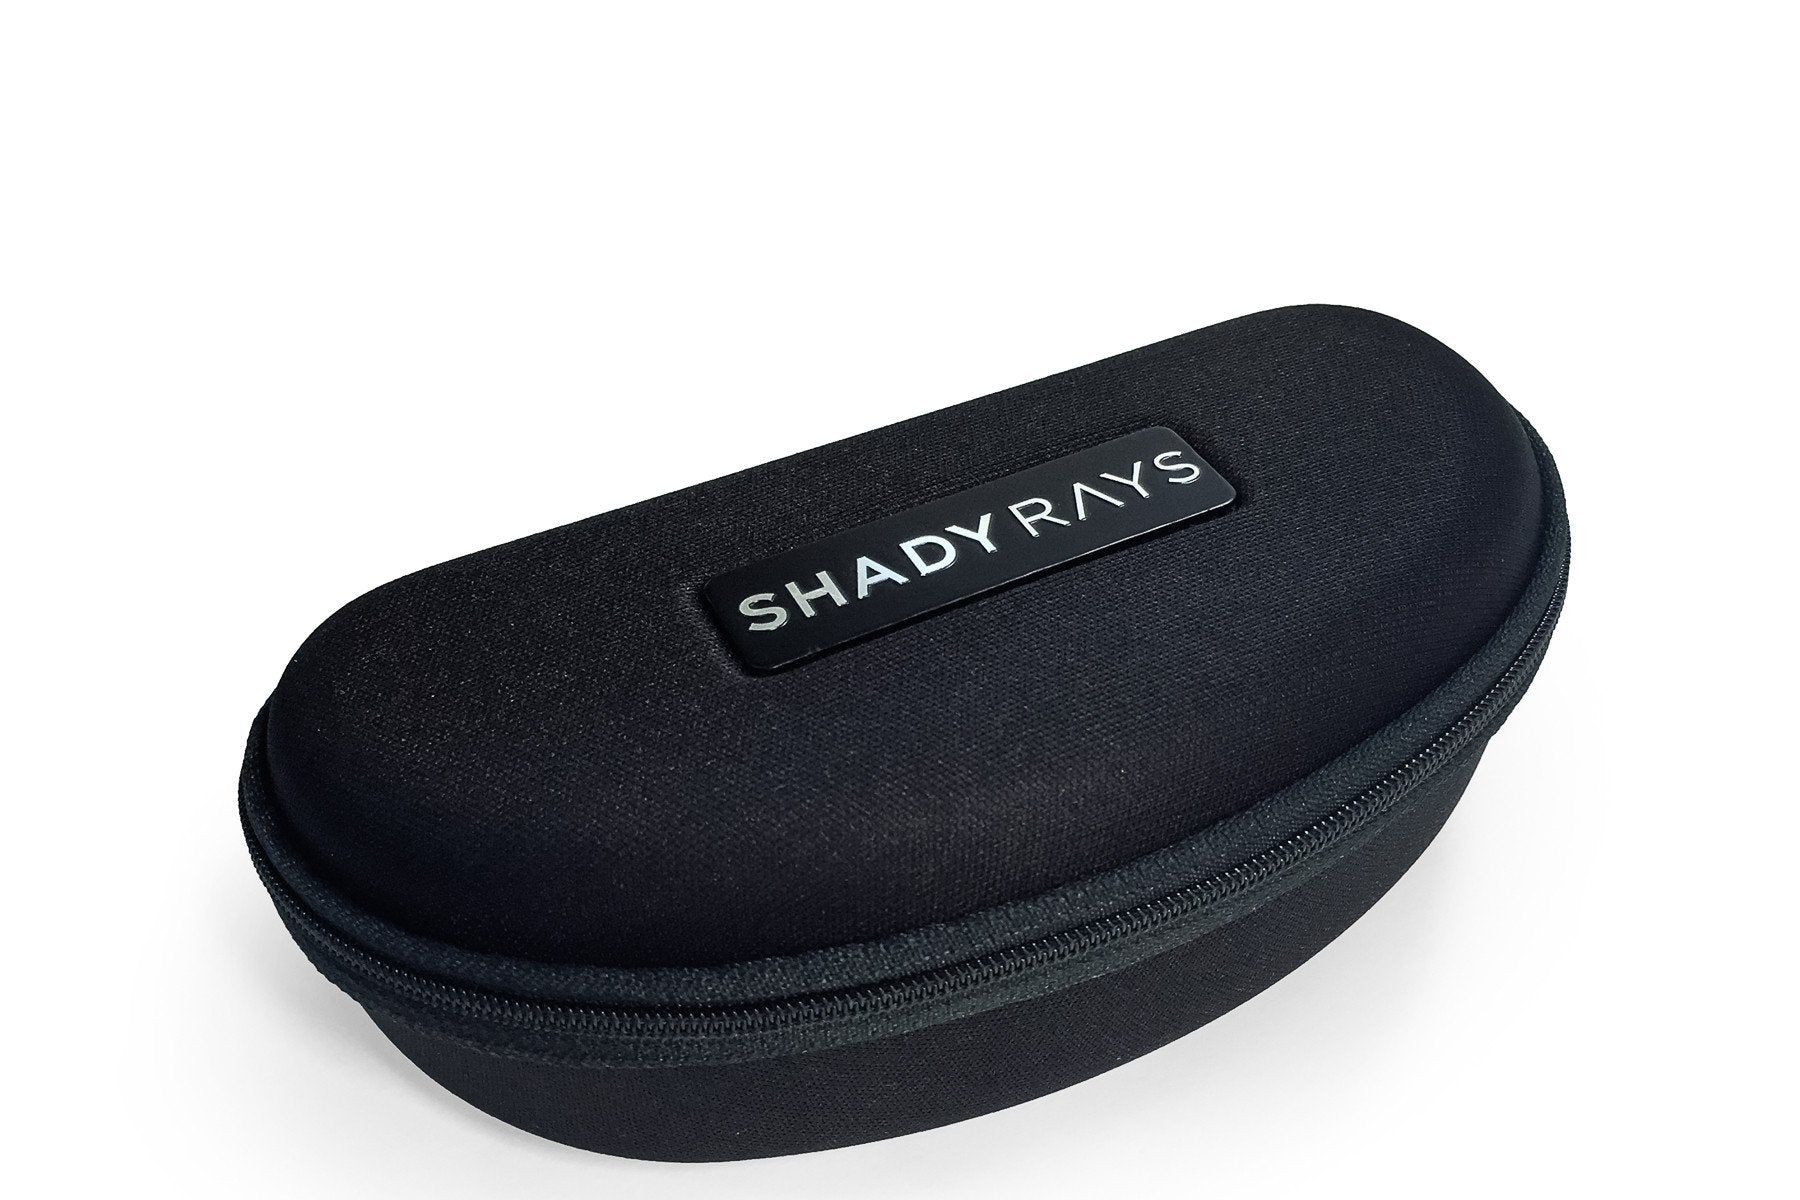 Signature Live Hard Case